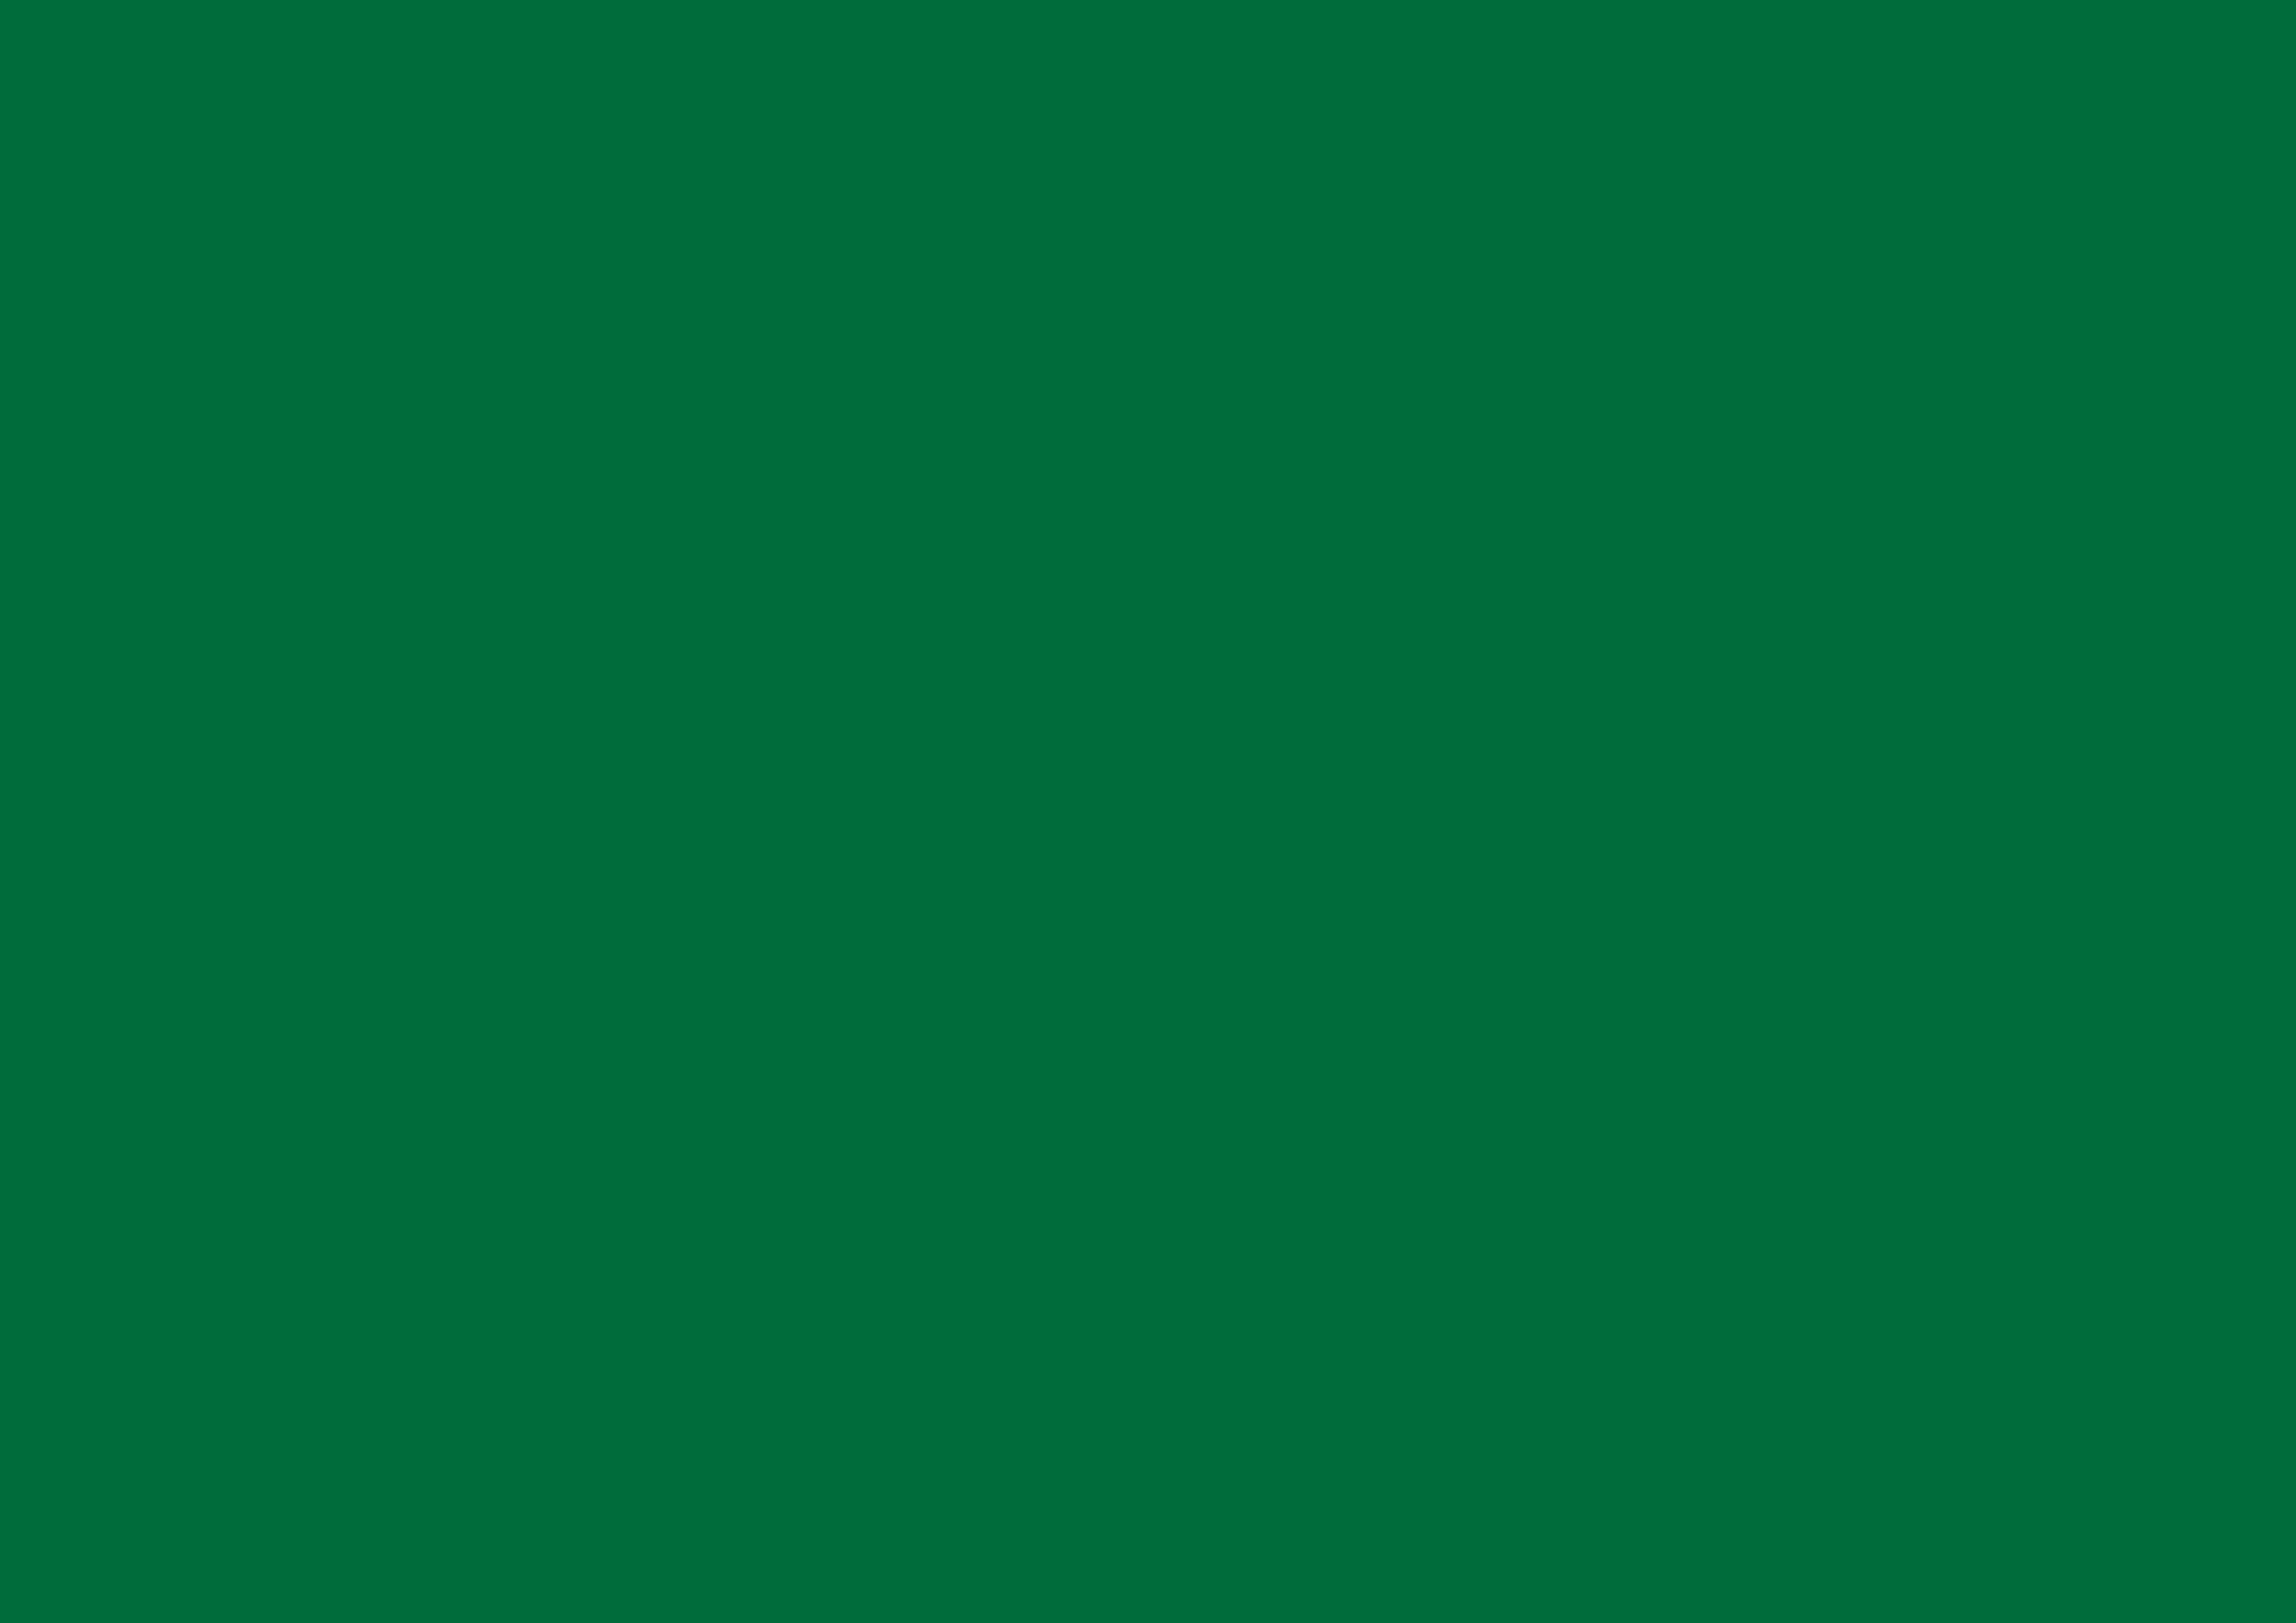 3508x2480 Cadmium Green Solid Color Background